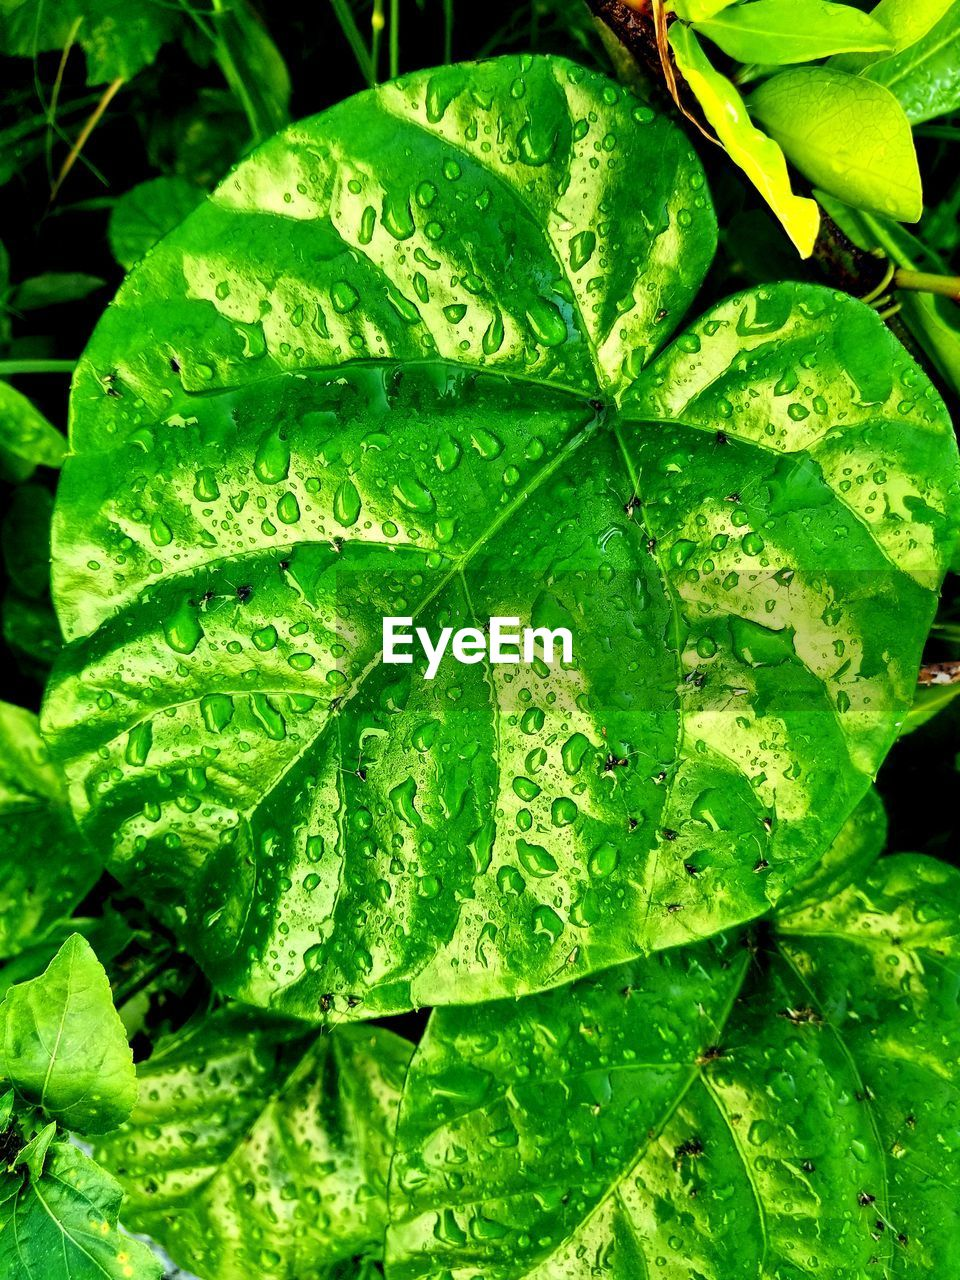 leaf, plant part, green color, growth, plant, drop, close-up, nature, wet, water, beauty in nature, no people, day, leaves, freshness, leaf vein, focus on foreground, full frame, outdoors, raindrop, rain, dew, rainy season, purity